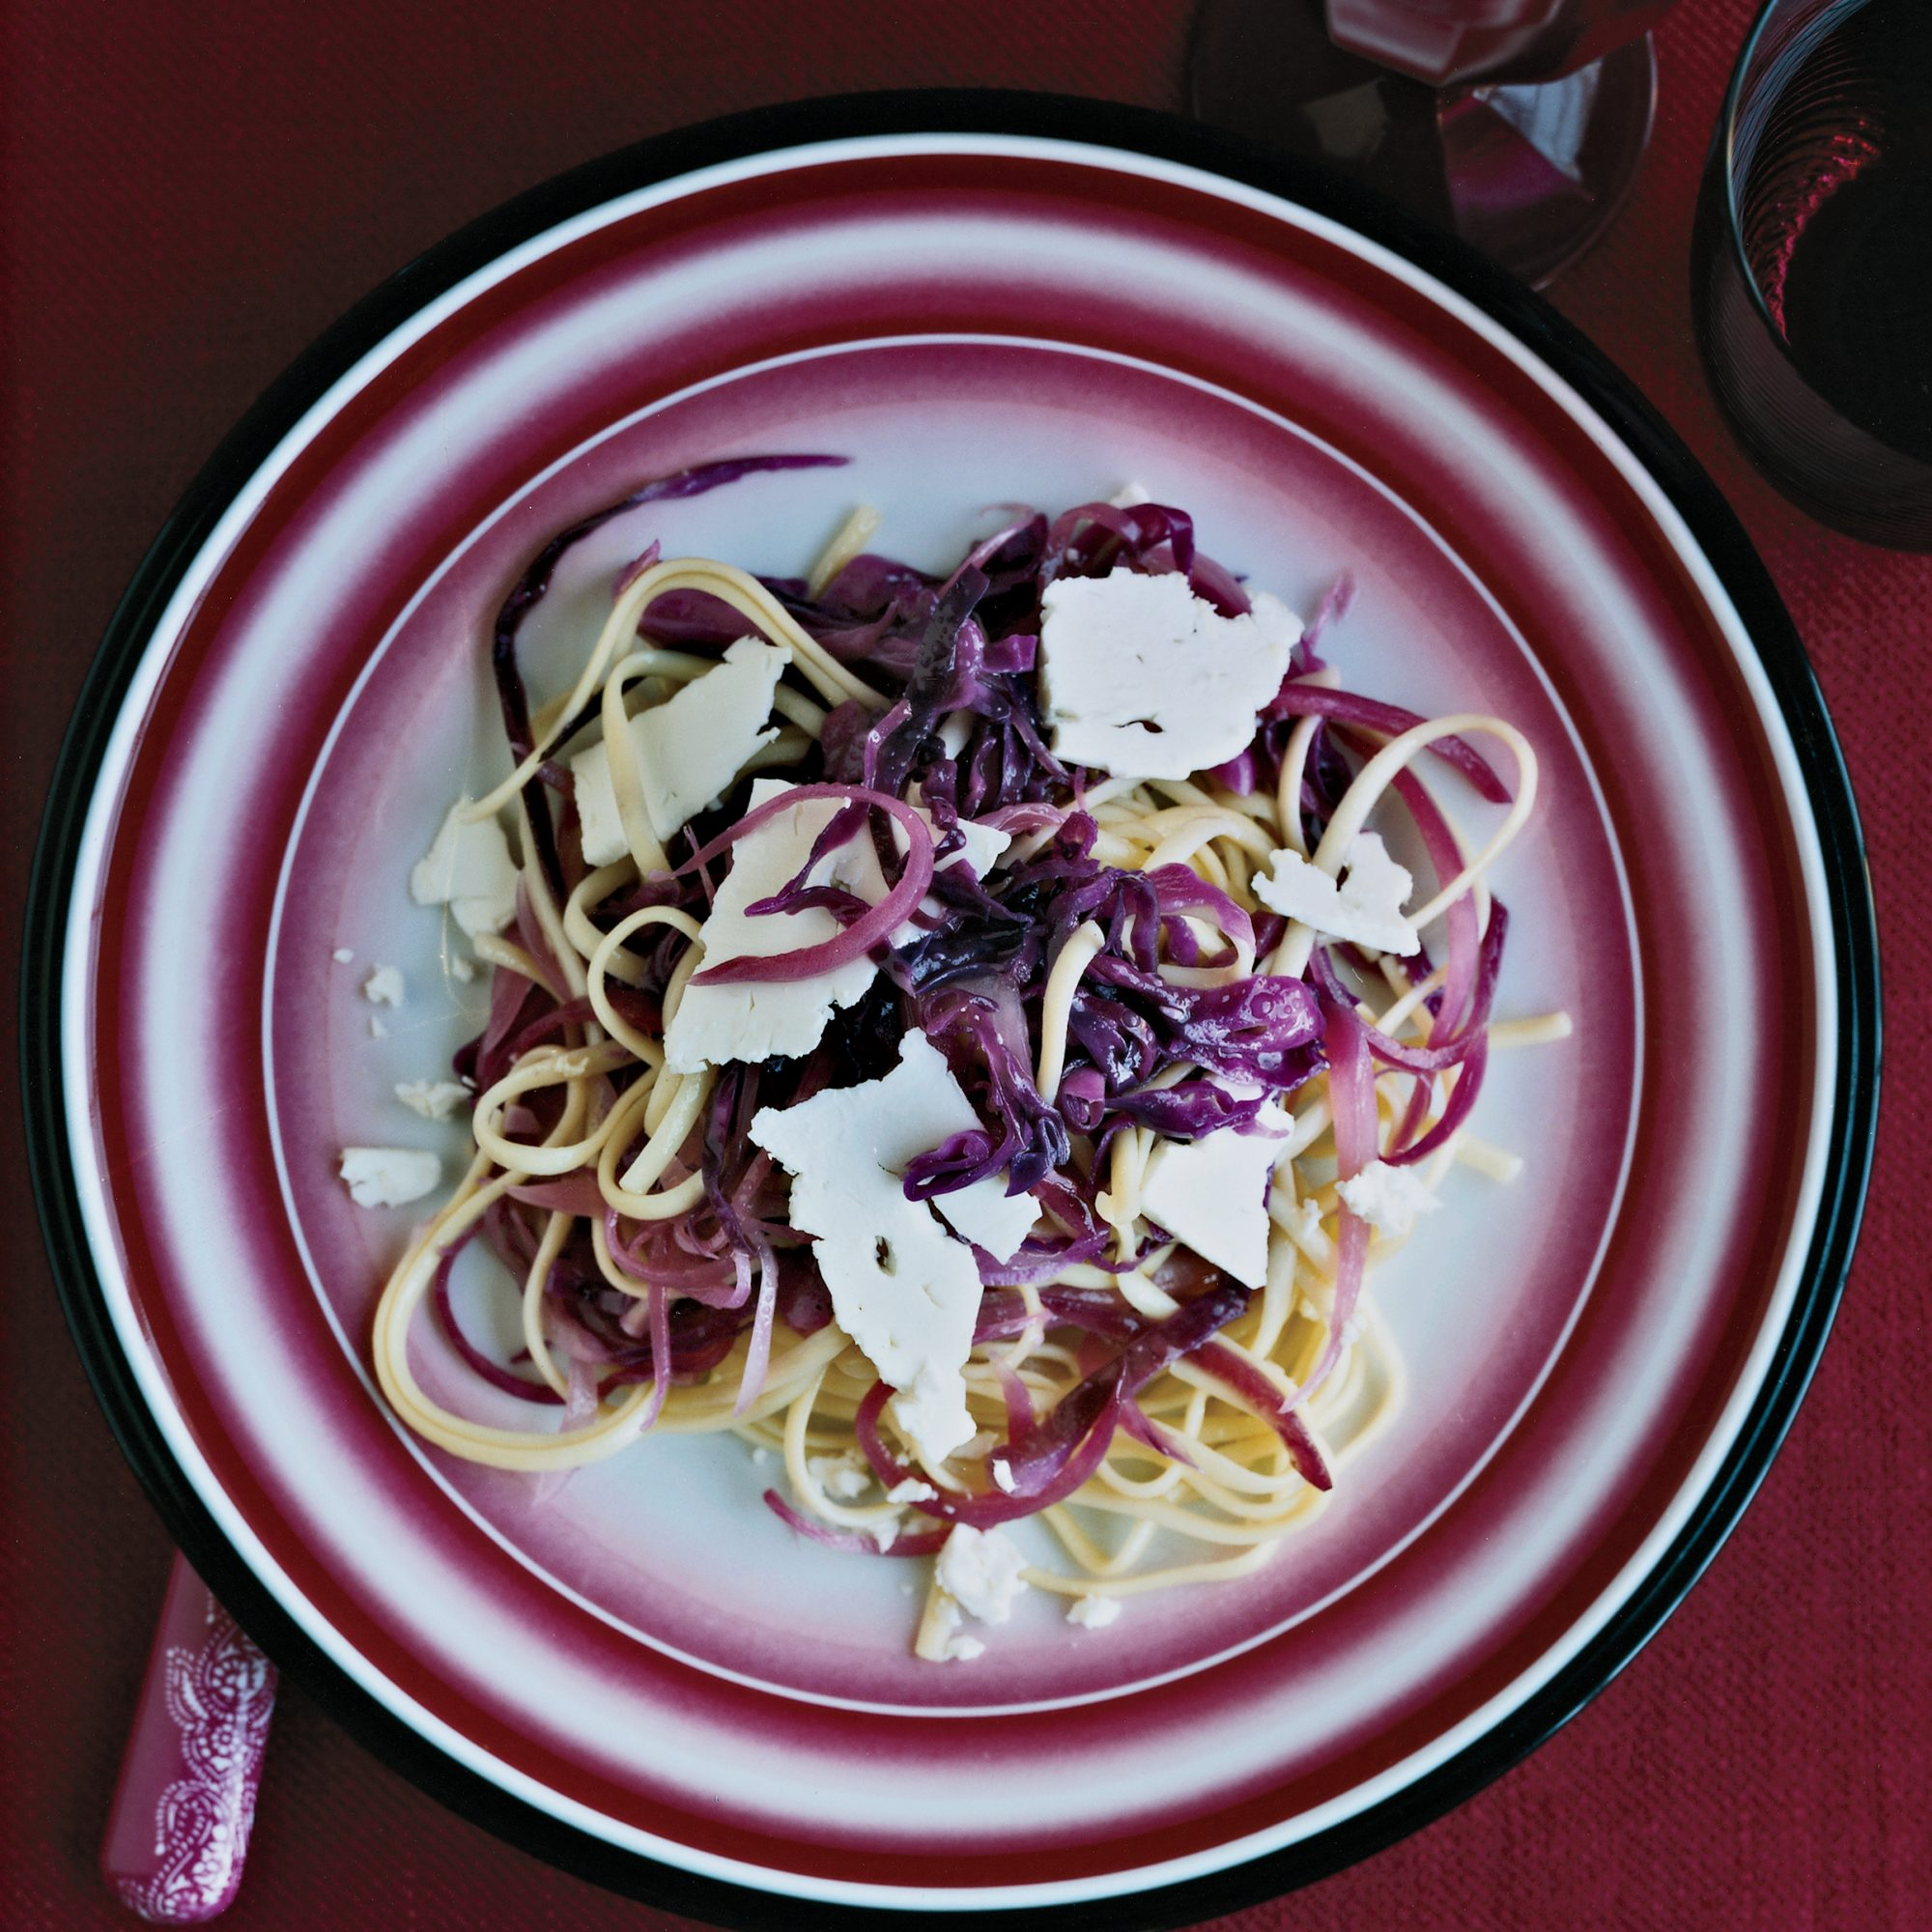 200903-r-linguine-cabbage.jpg